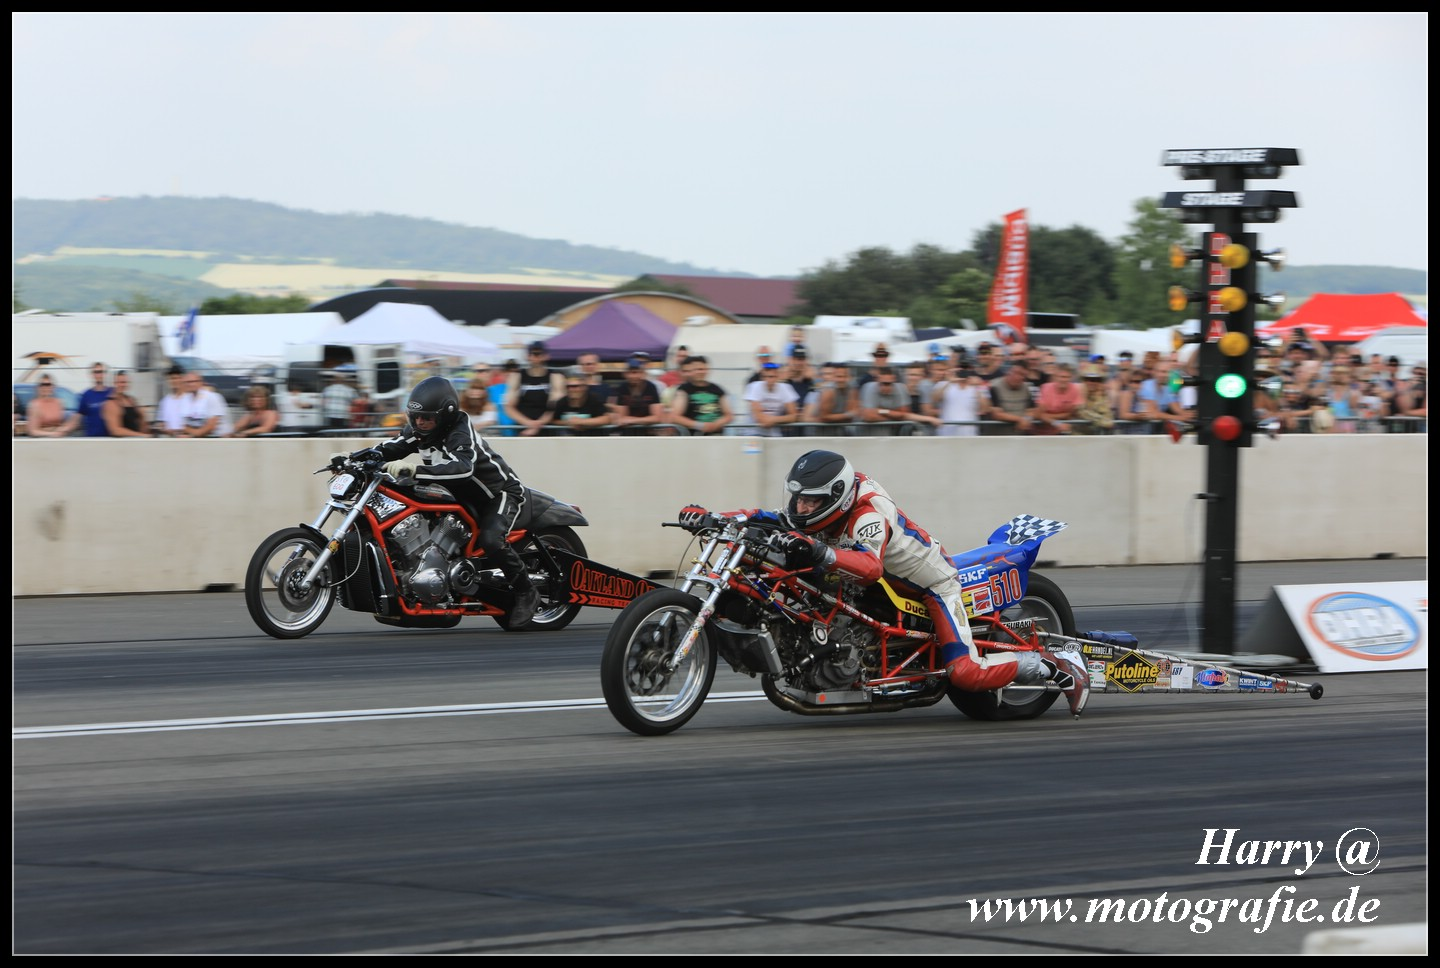 8-10 jun 2018 Alkersleben Germany 2nd Super Twin Top Gas round, left lane Herm,an Jolink on the Ducati 1198 RS Drag Bike fighting to get not cross midlle line leaning with his body to the left, right lane Petersen Germany on 1300 V-Rod Destroyer